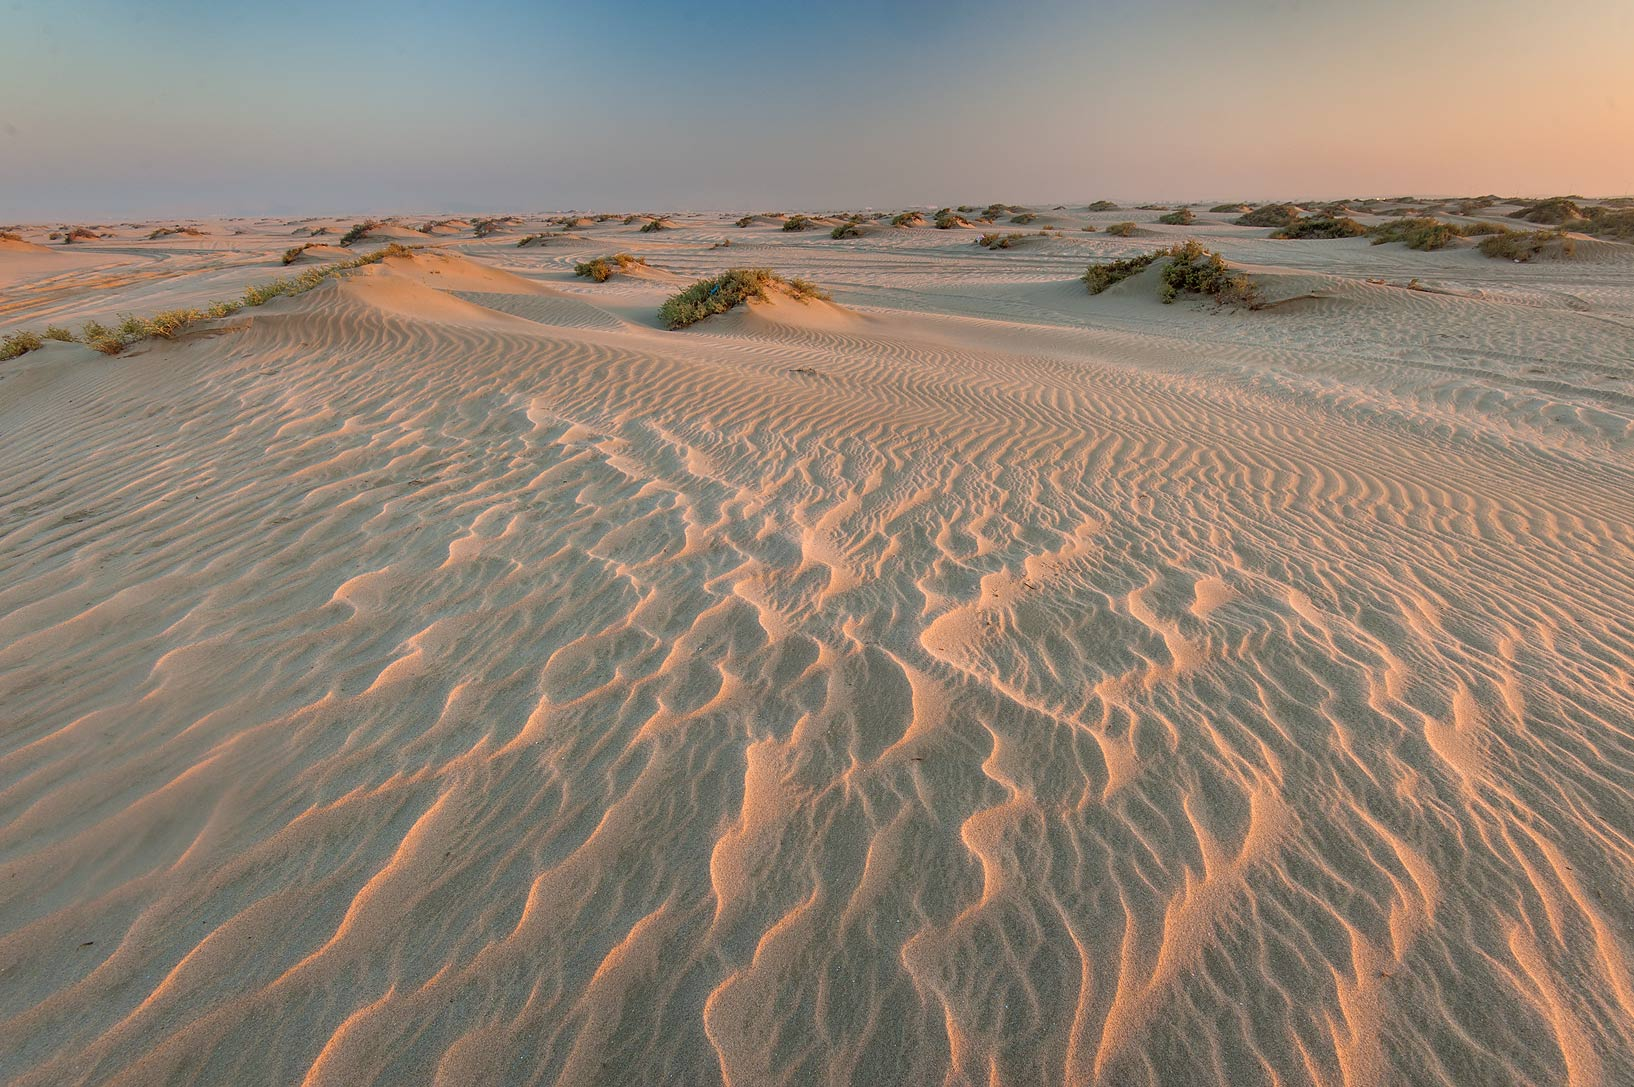 Pattern of windblown sand at sunrise near Sealine...Resort near Mesaieed. Southern Qatar